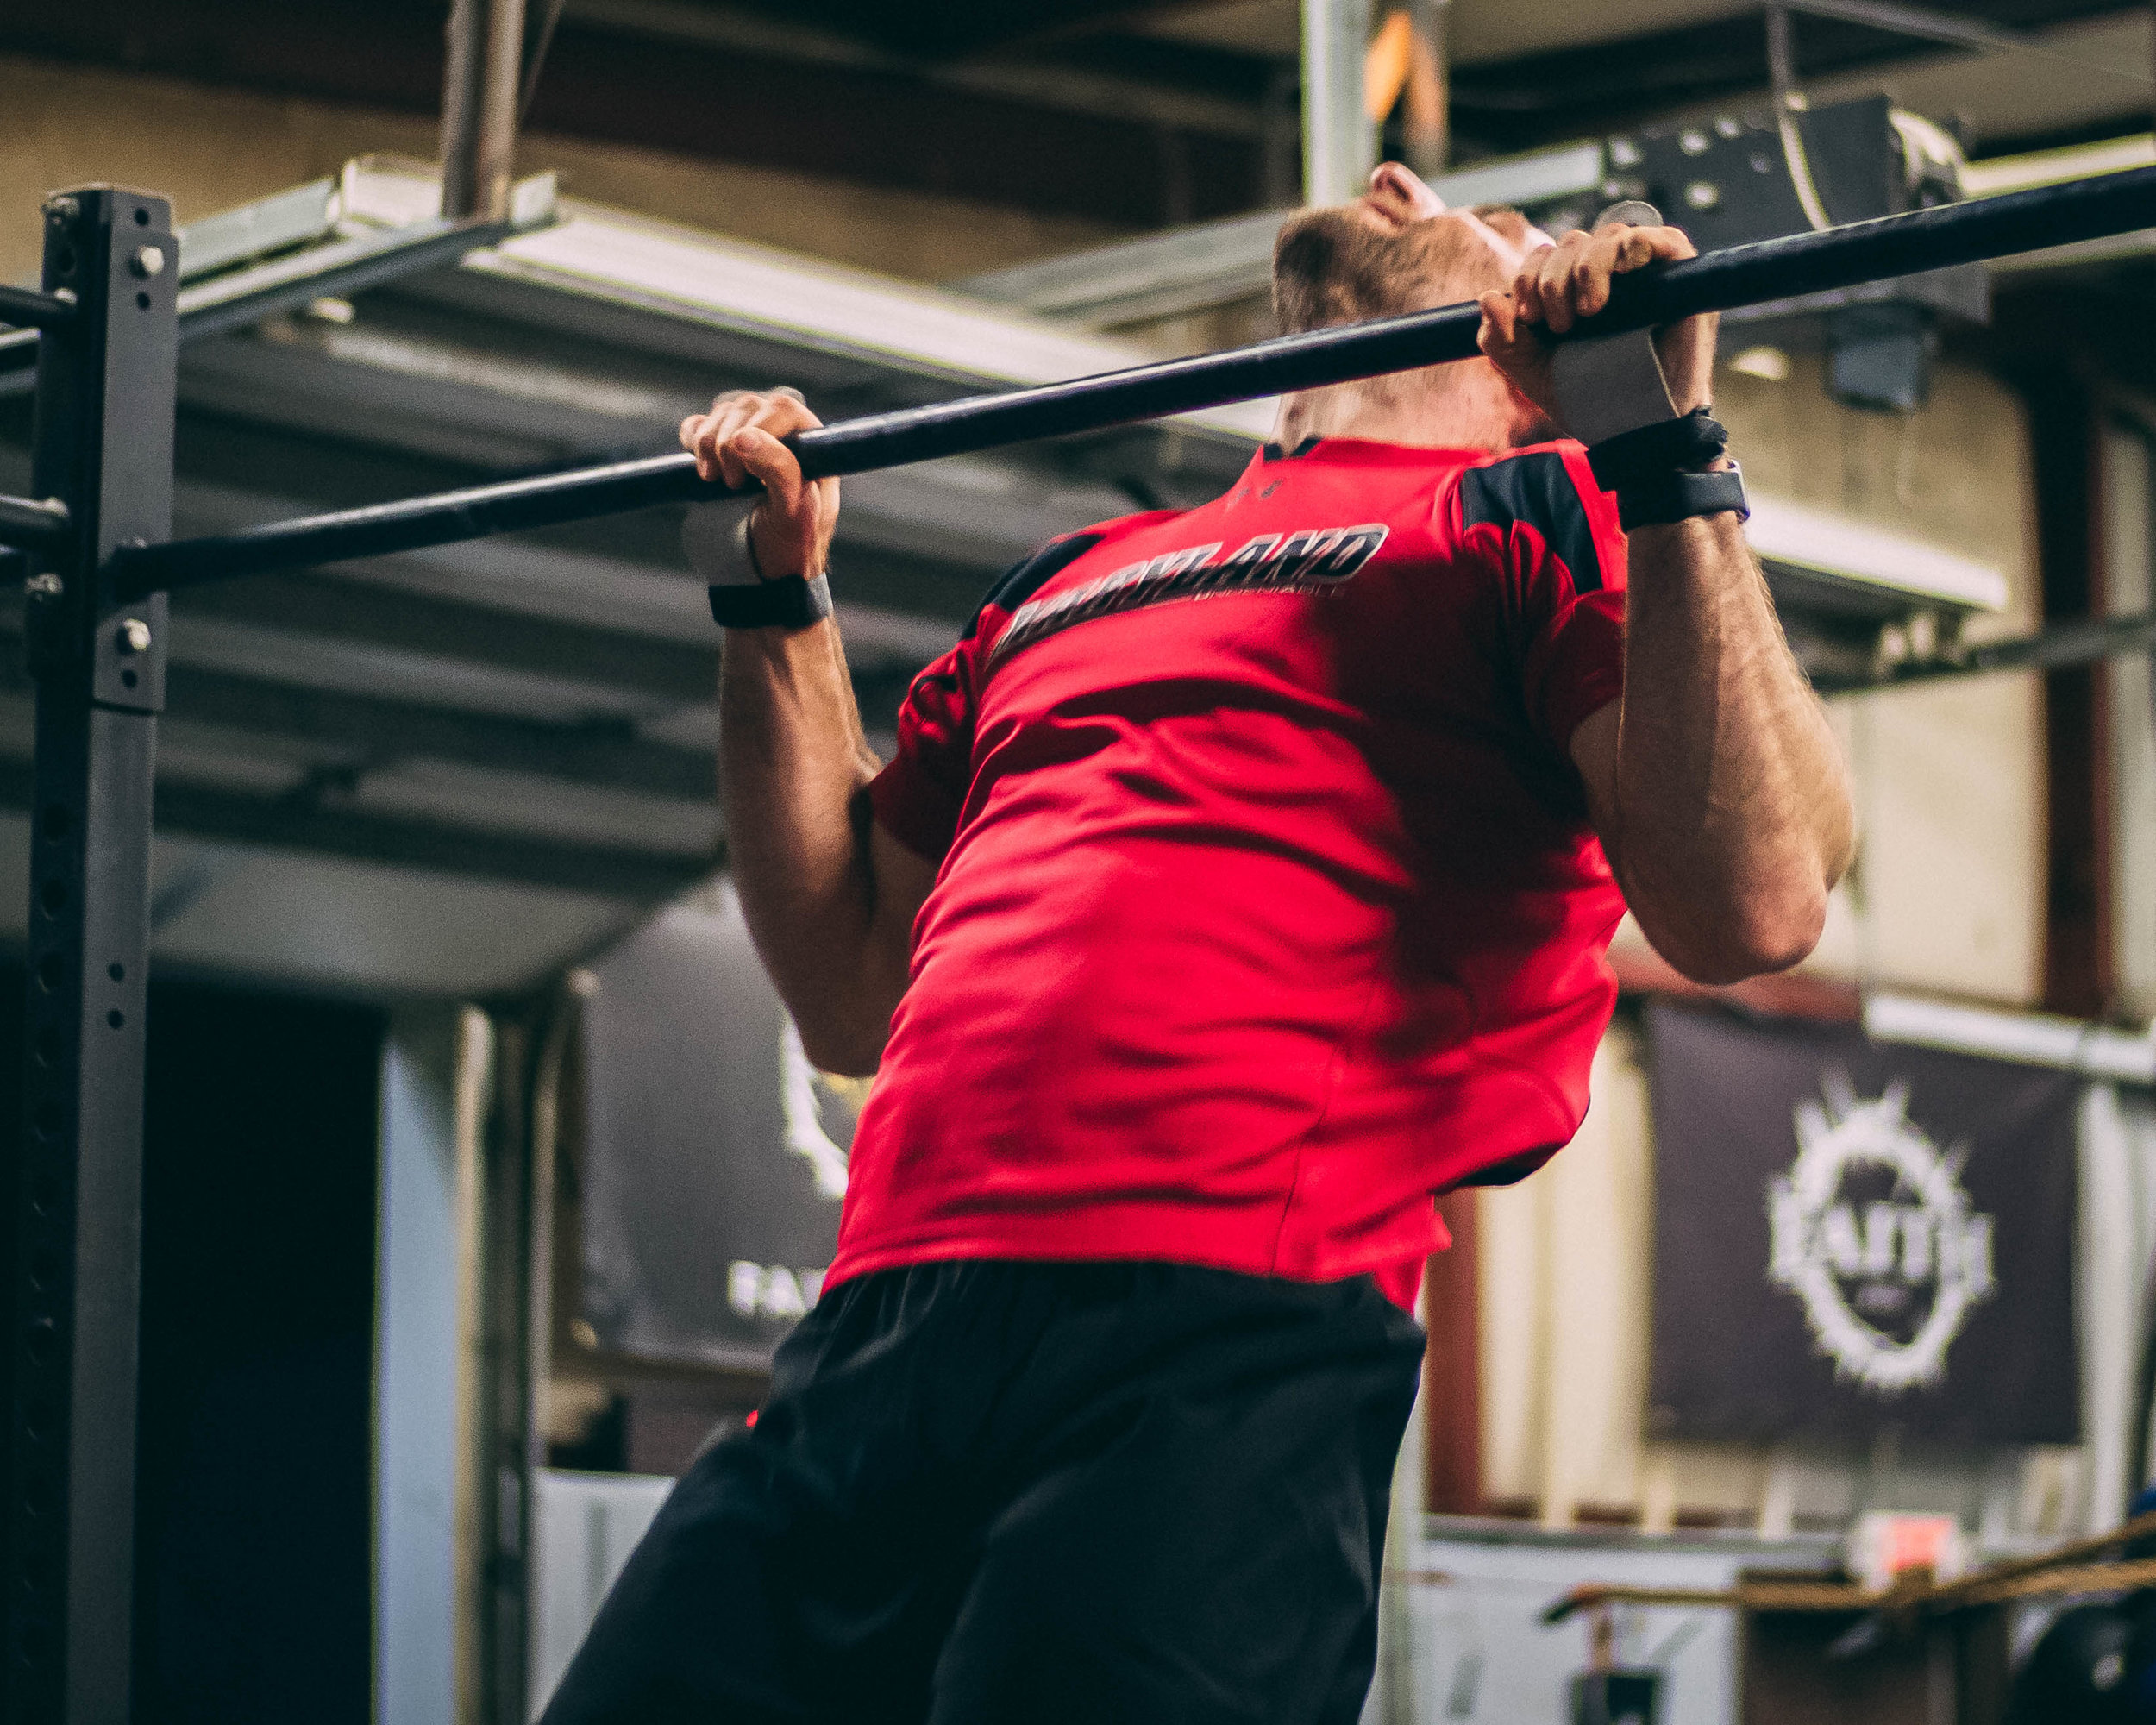 CrossFit - Group Fitness at it's finest! Workouts combine a variety of functional movements - everything from cardio and gymnastics to power lifting and olympic lifting. Every day brings something new, so get ready to get after it! *Prep Course Required